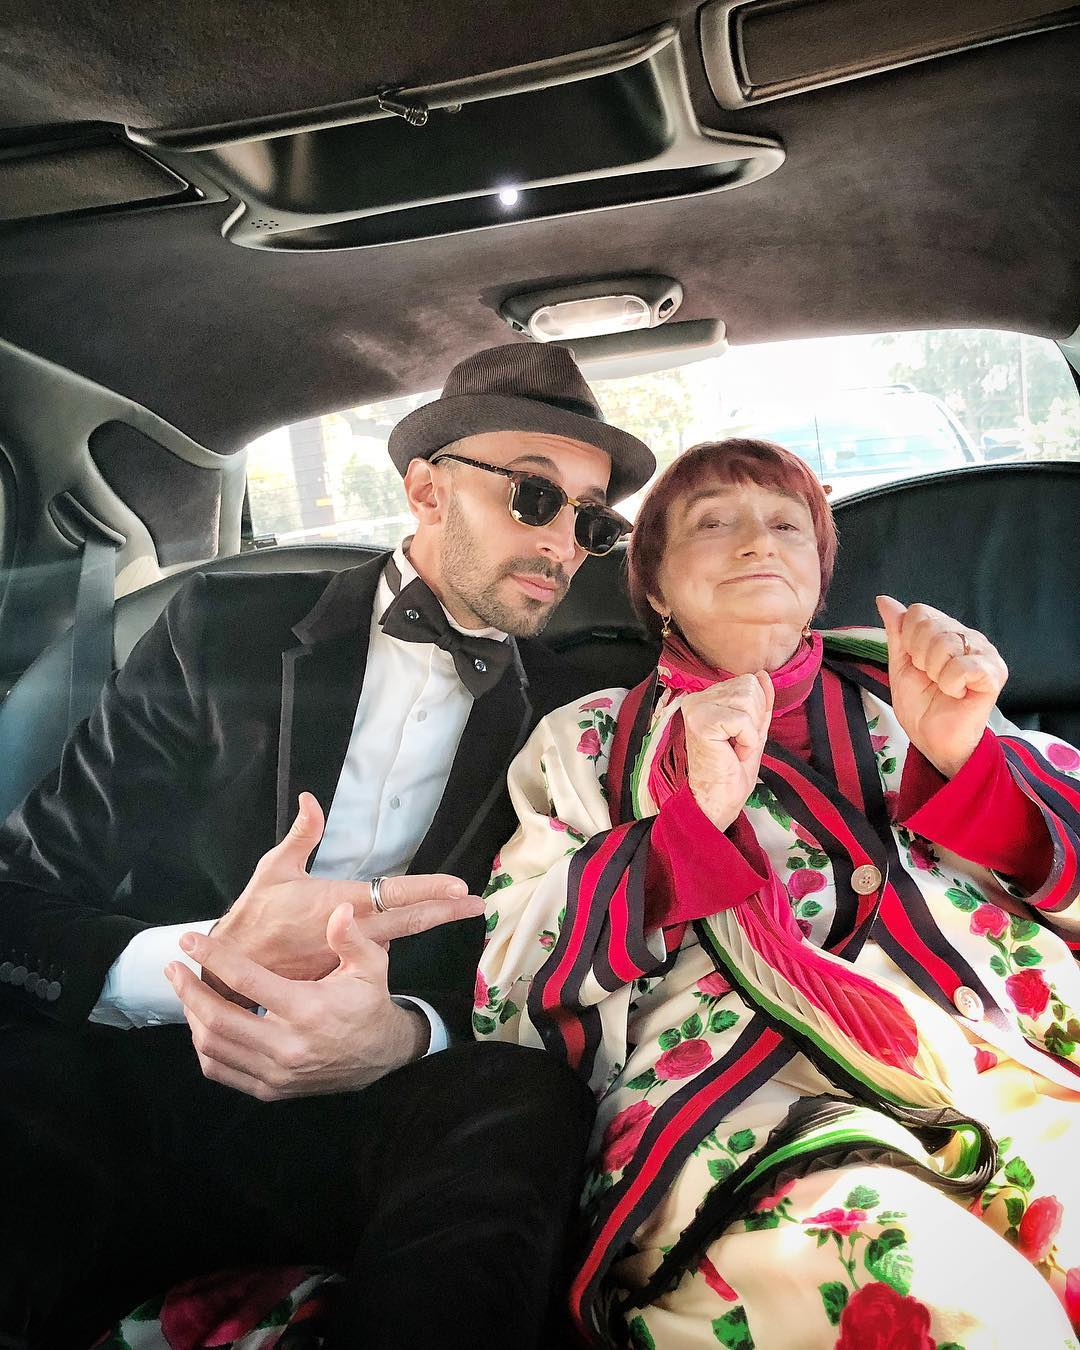 JR and Agnès Varda Varda en-route to the Oscars